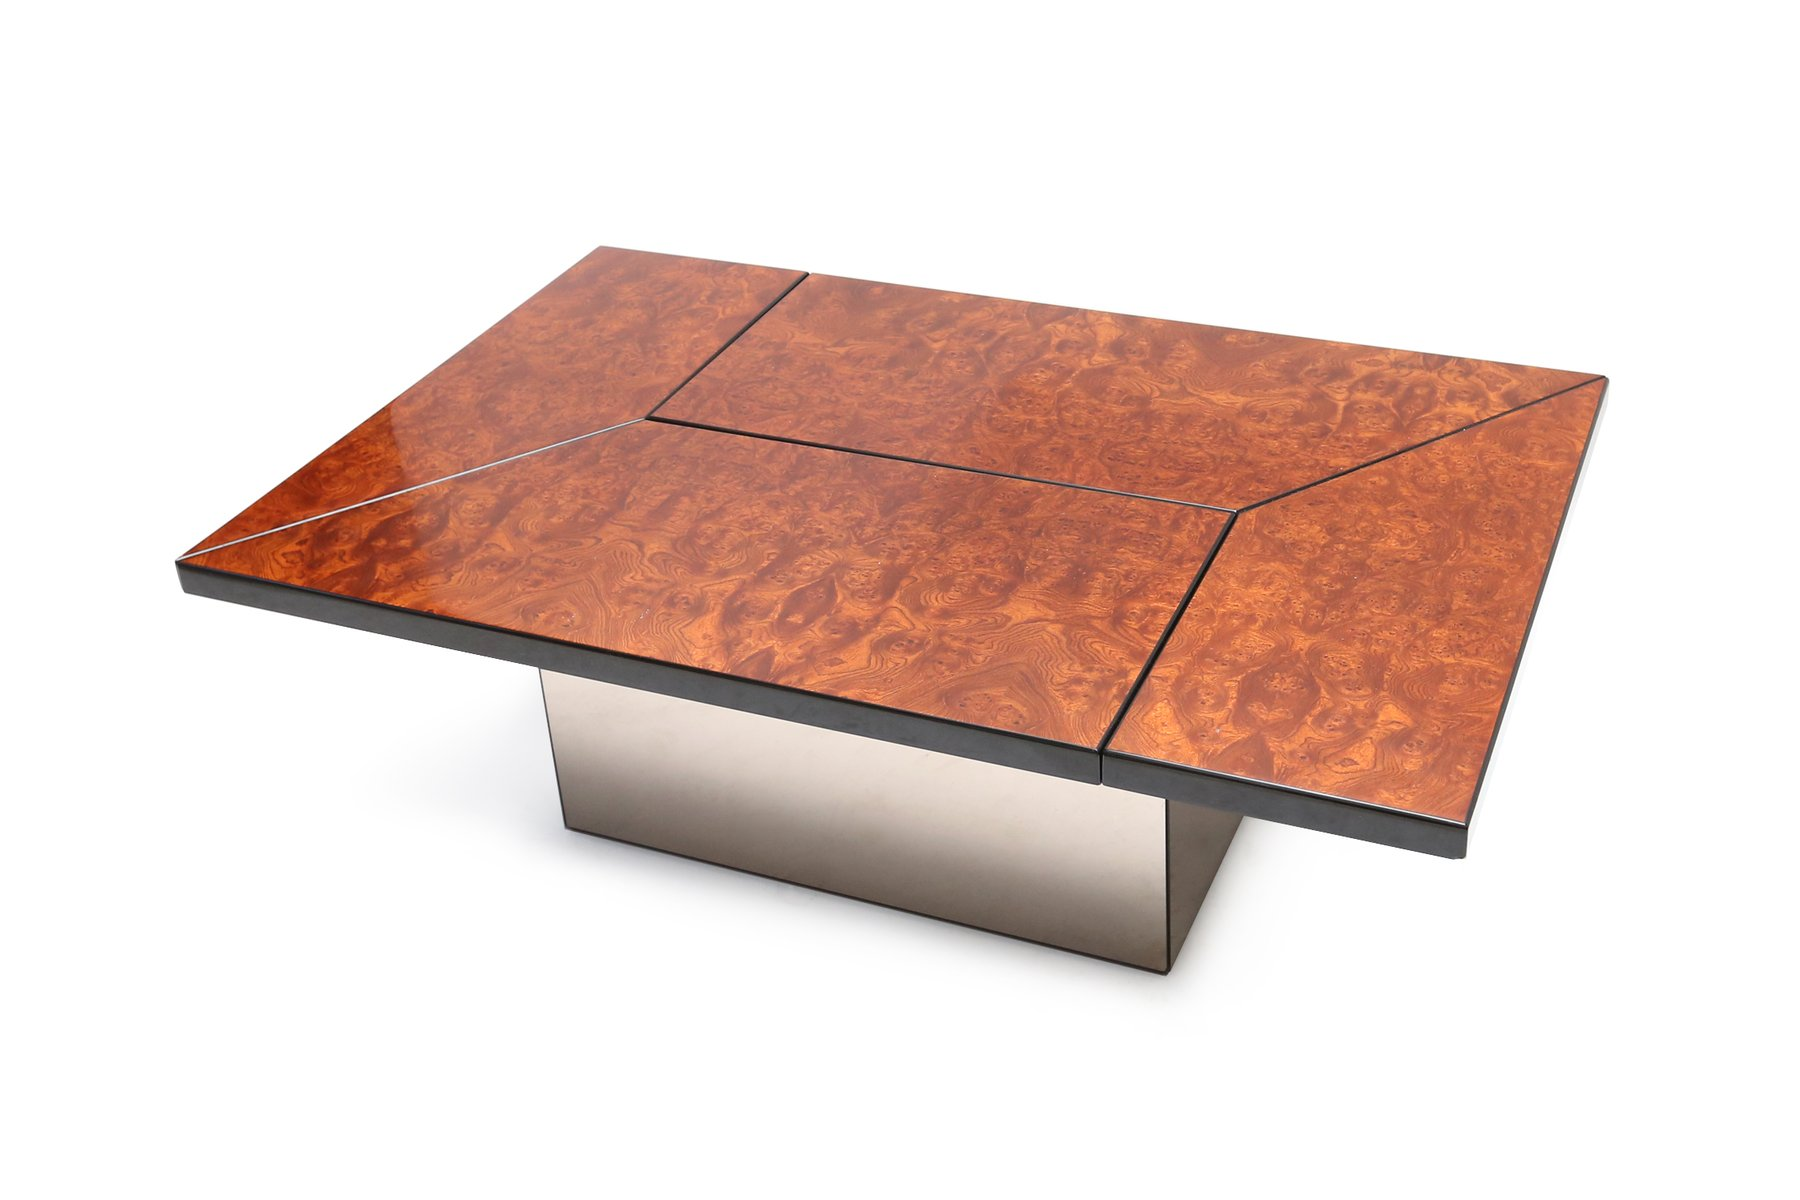 Burl bar coffee table by paul michel 1970s for sale at pamono - Table basse roche bobois ...